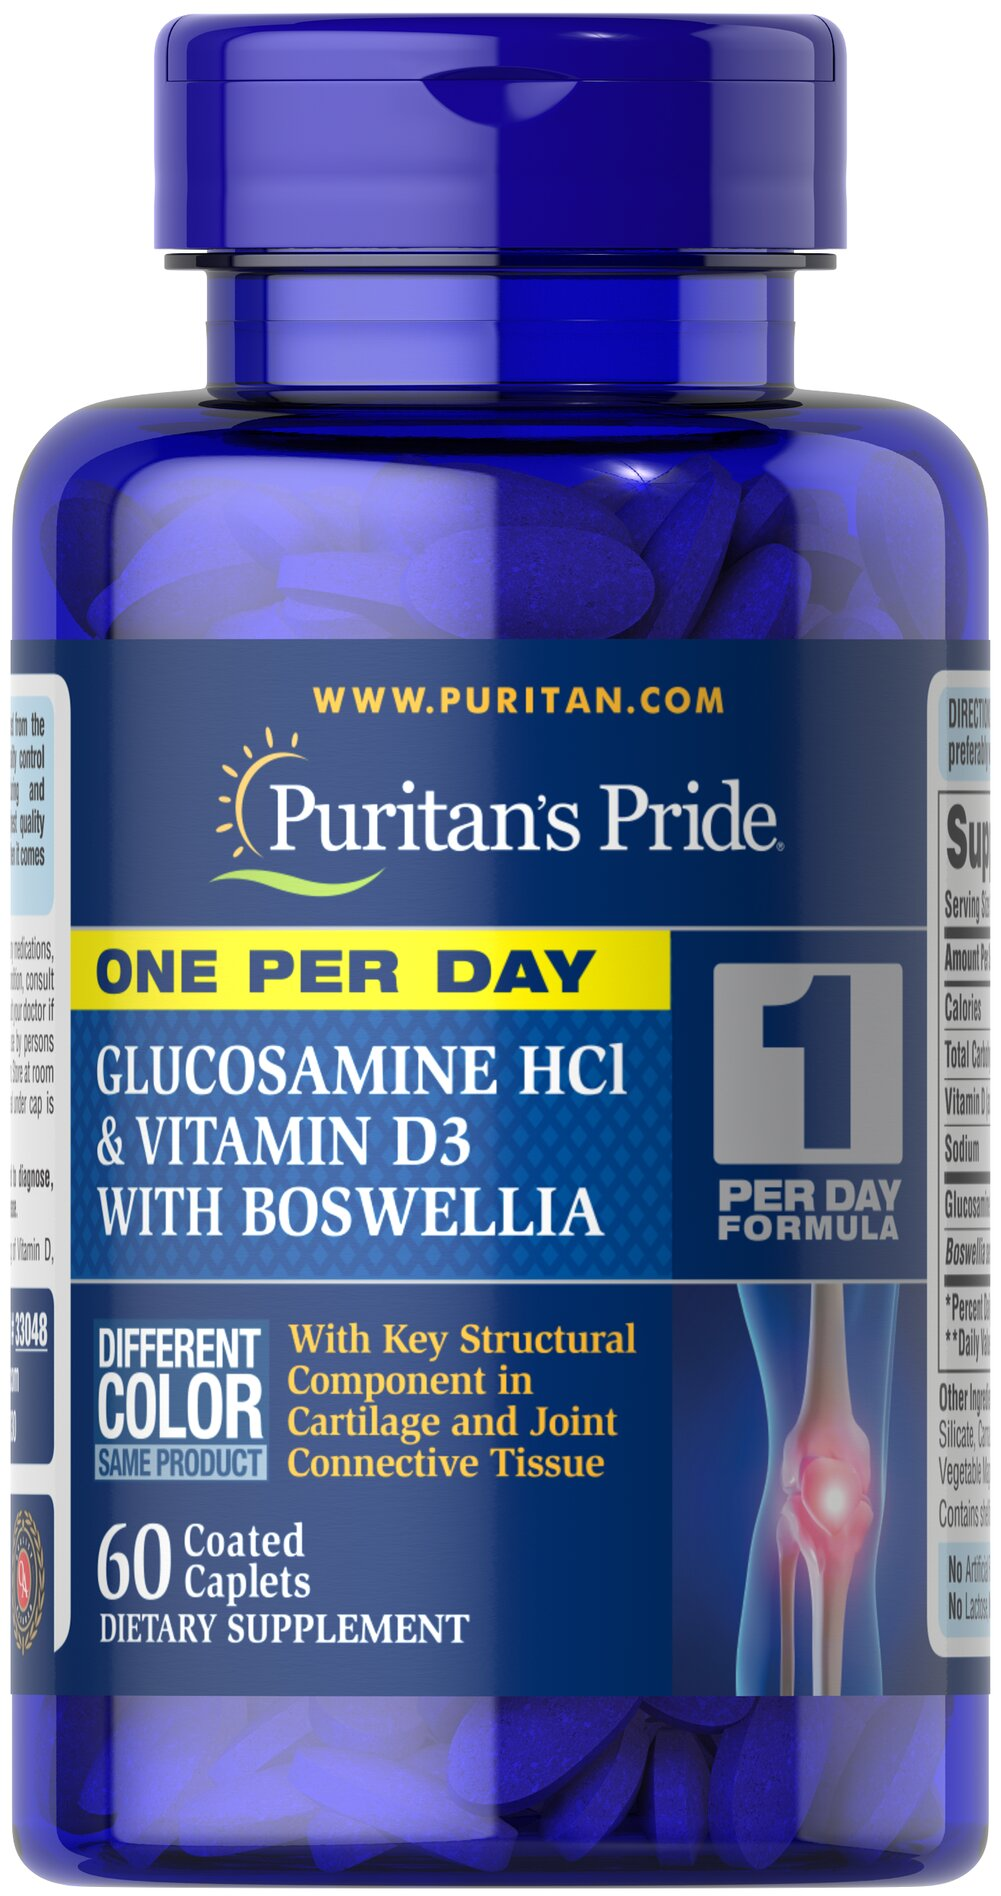 One Per Day Glucosamine, Vitamin D3 & Boswellia <p>One caplet a day provides powerful support for healthy joints, bones and cartilage**</p><p>Features Glucosamine to cushion and lubricate the joints, while promoting comfortable joint movement**</p><p>Helps rejuvenate joint cartilage and support healthy cartilage formation**</p><p>Includes Vitamin D3 to help maintain bone health and density**</p><p>Individual Results May Vary.<br />&